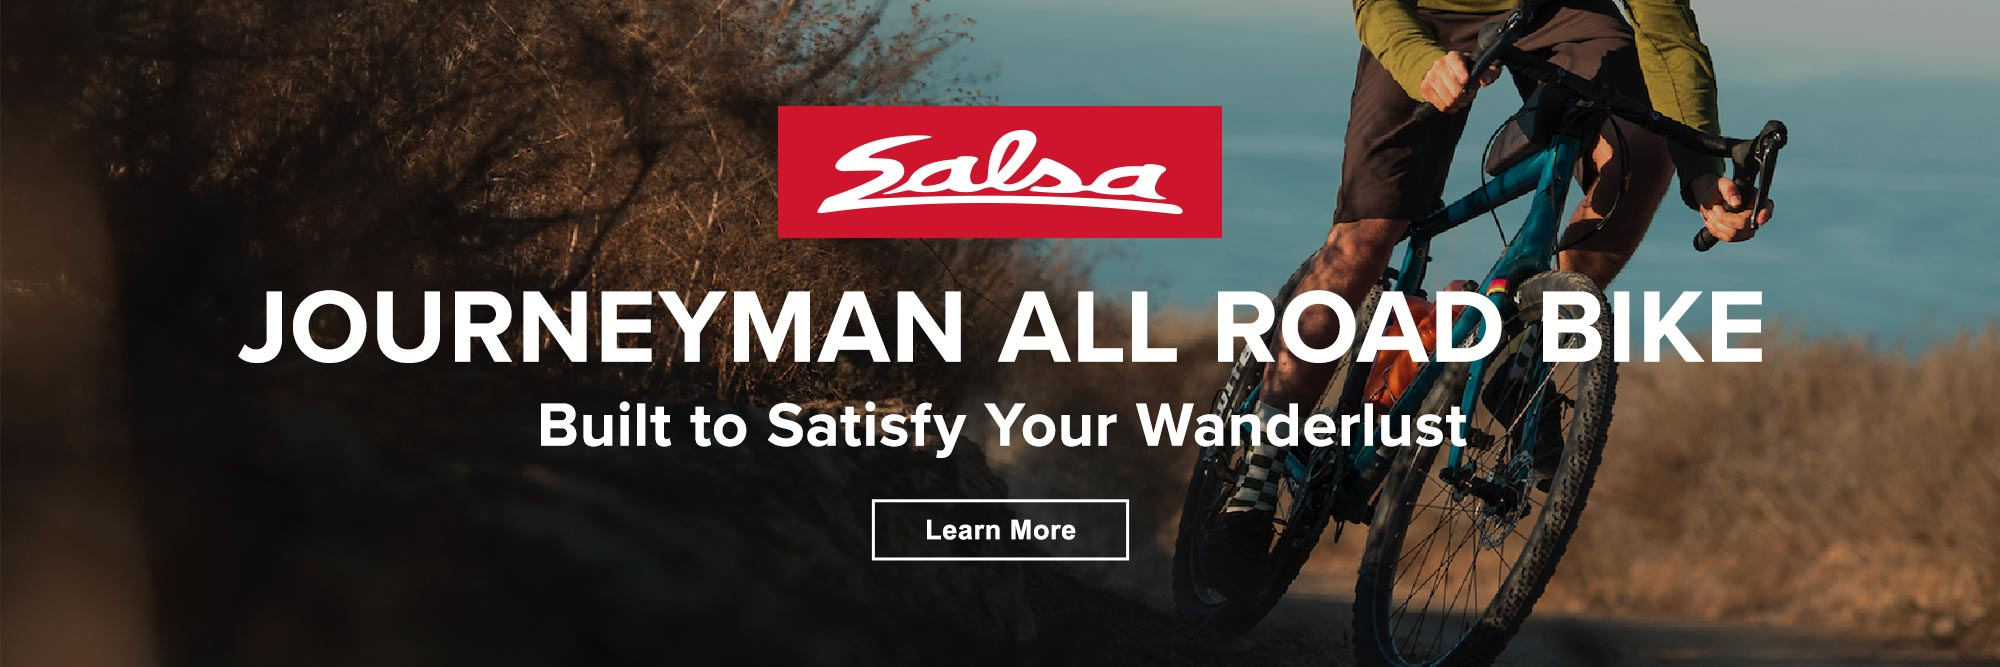 Salsa - JourneyMan Road Bike